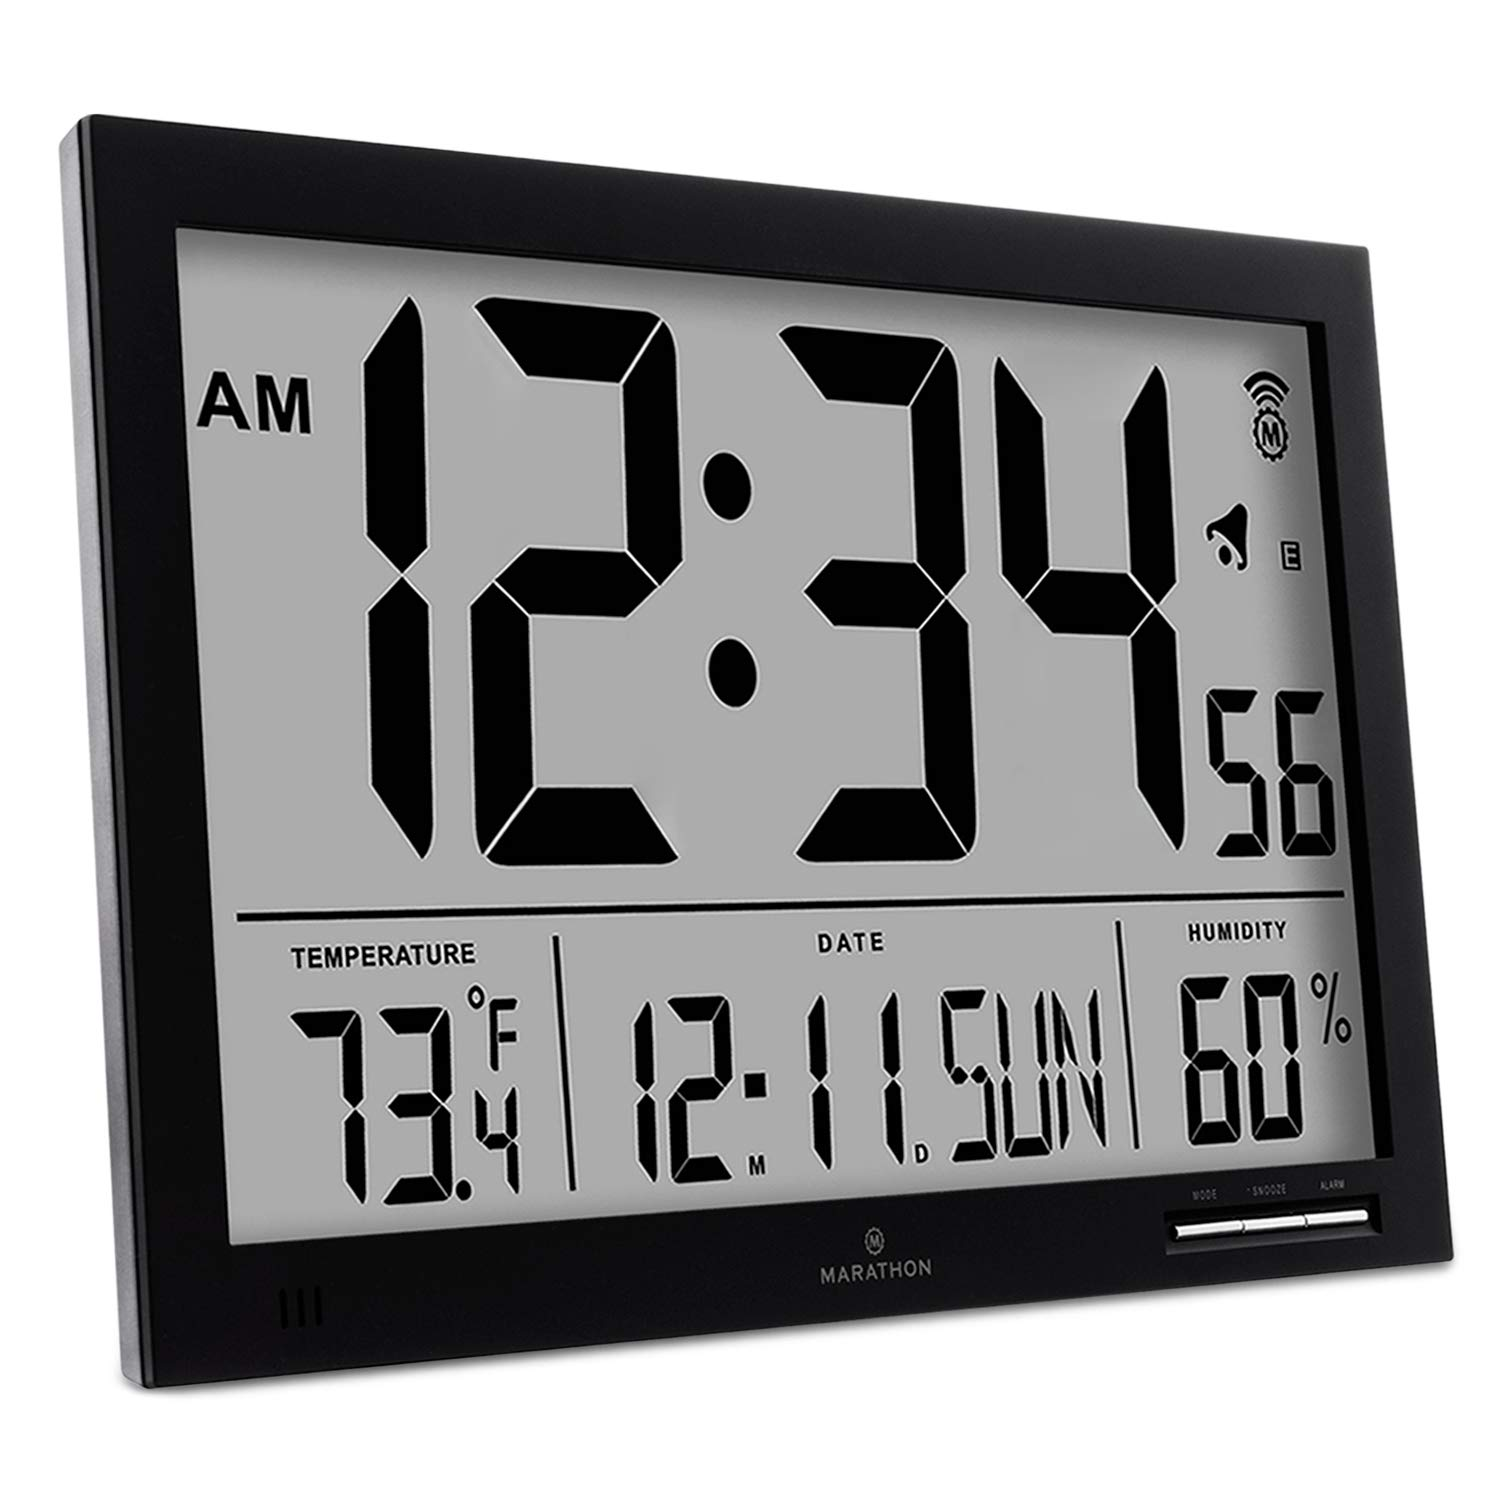 MARATHON CL030062BK Slim-Jumbo Atomic Digital Wall Clock with Temperature, Date and Humidity (Black)